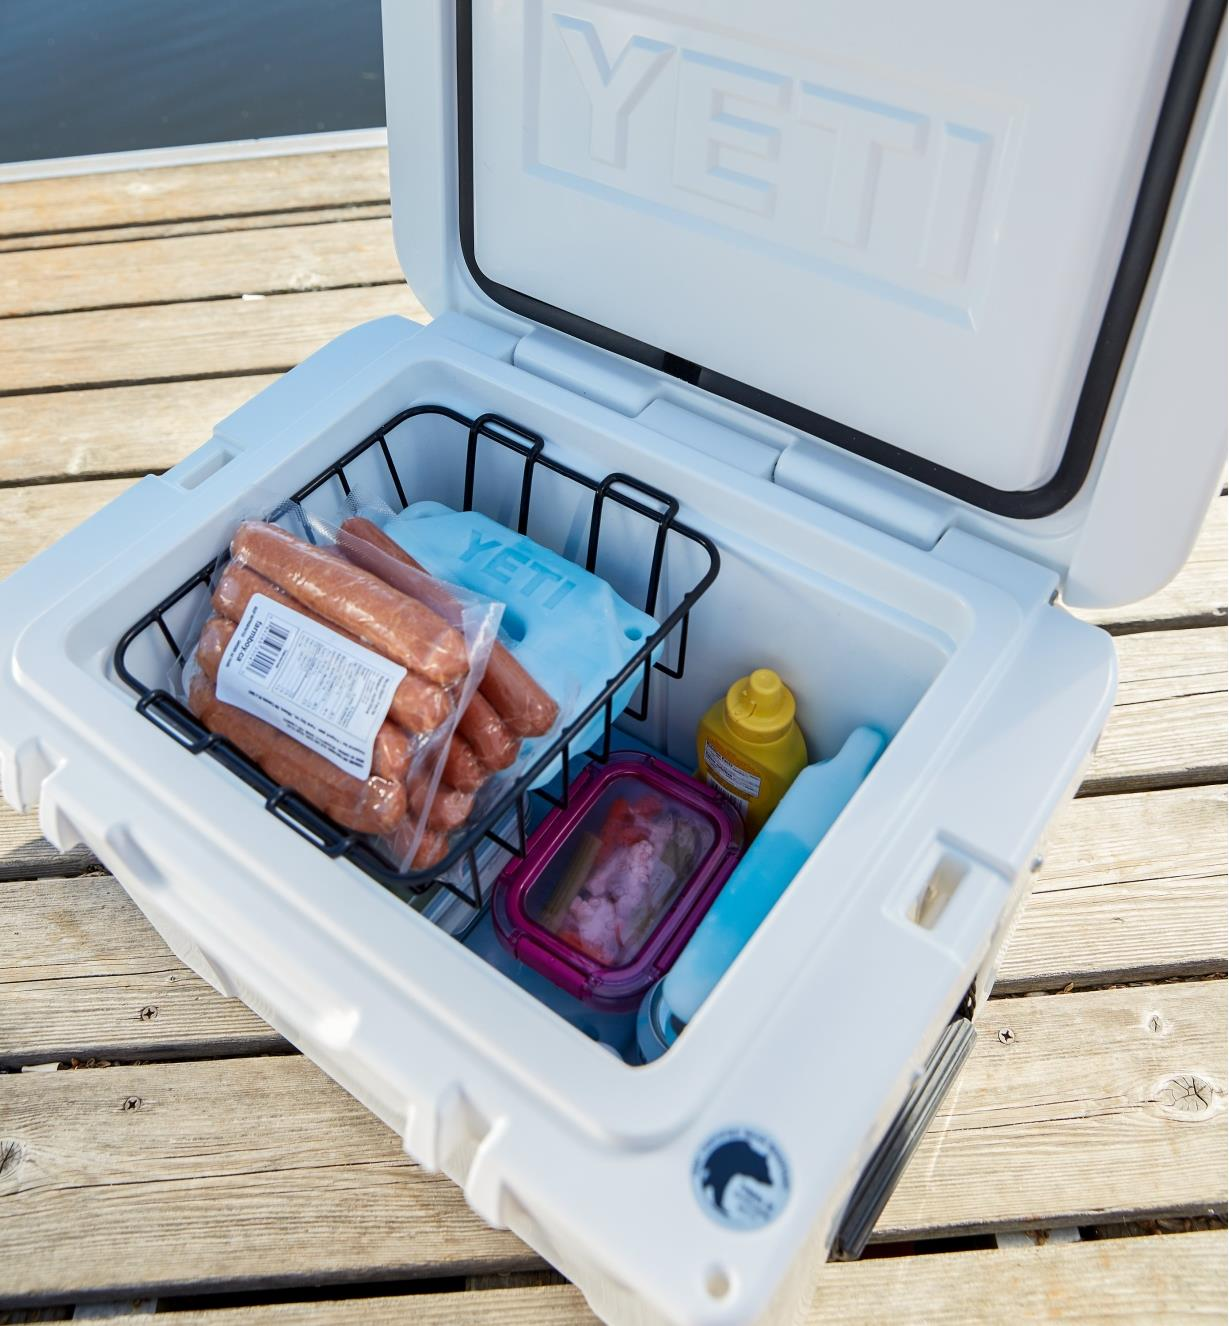 Yeti Tundra Hard-Sided 35 Cooler with lid open, showing food and ice packs inside